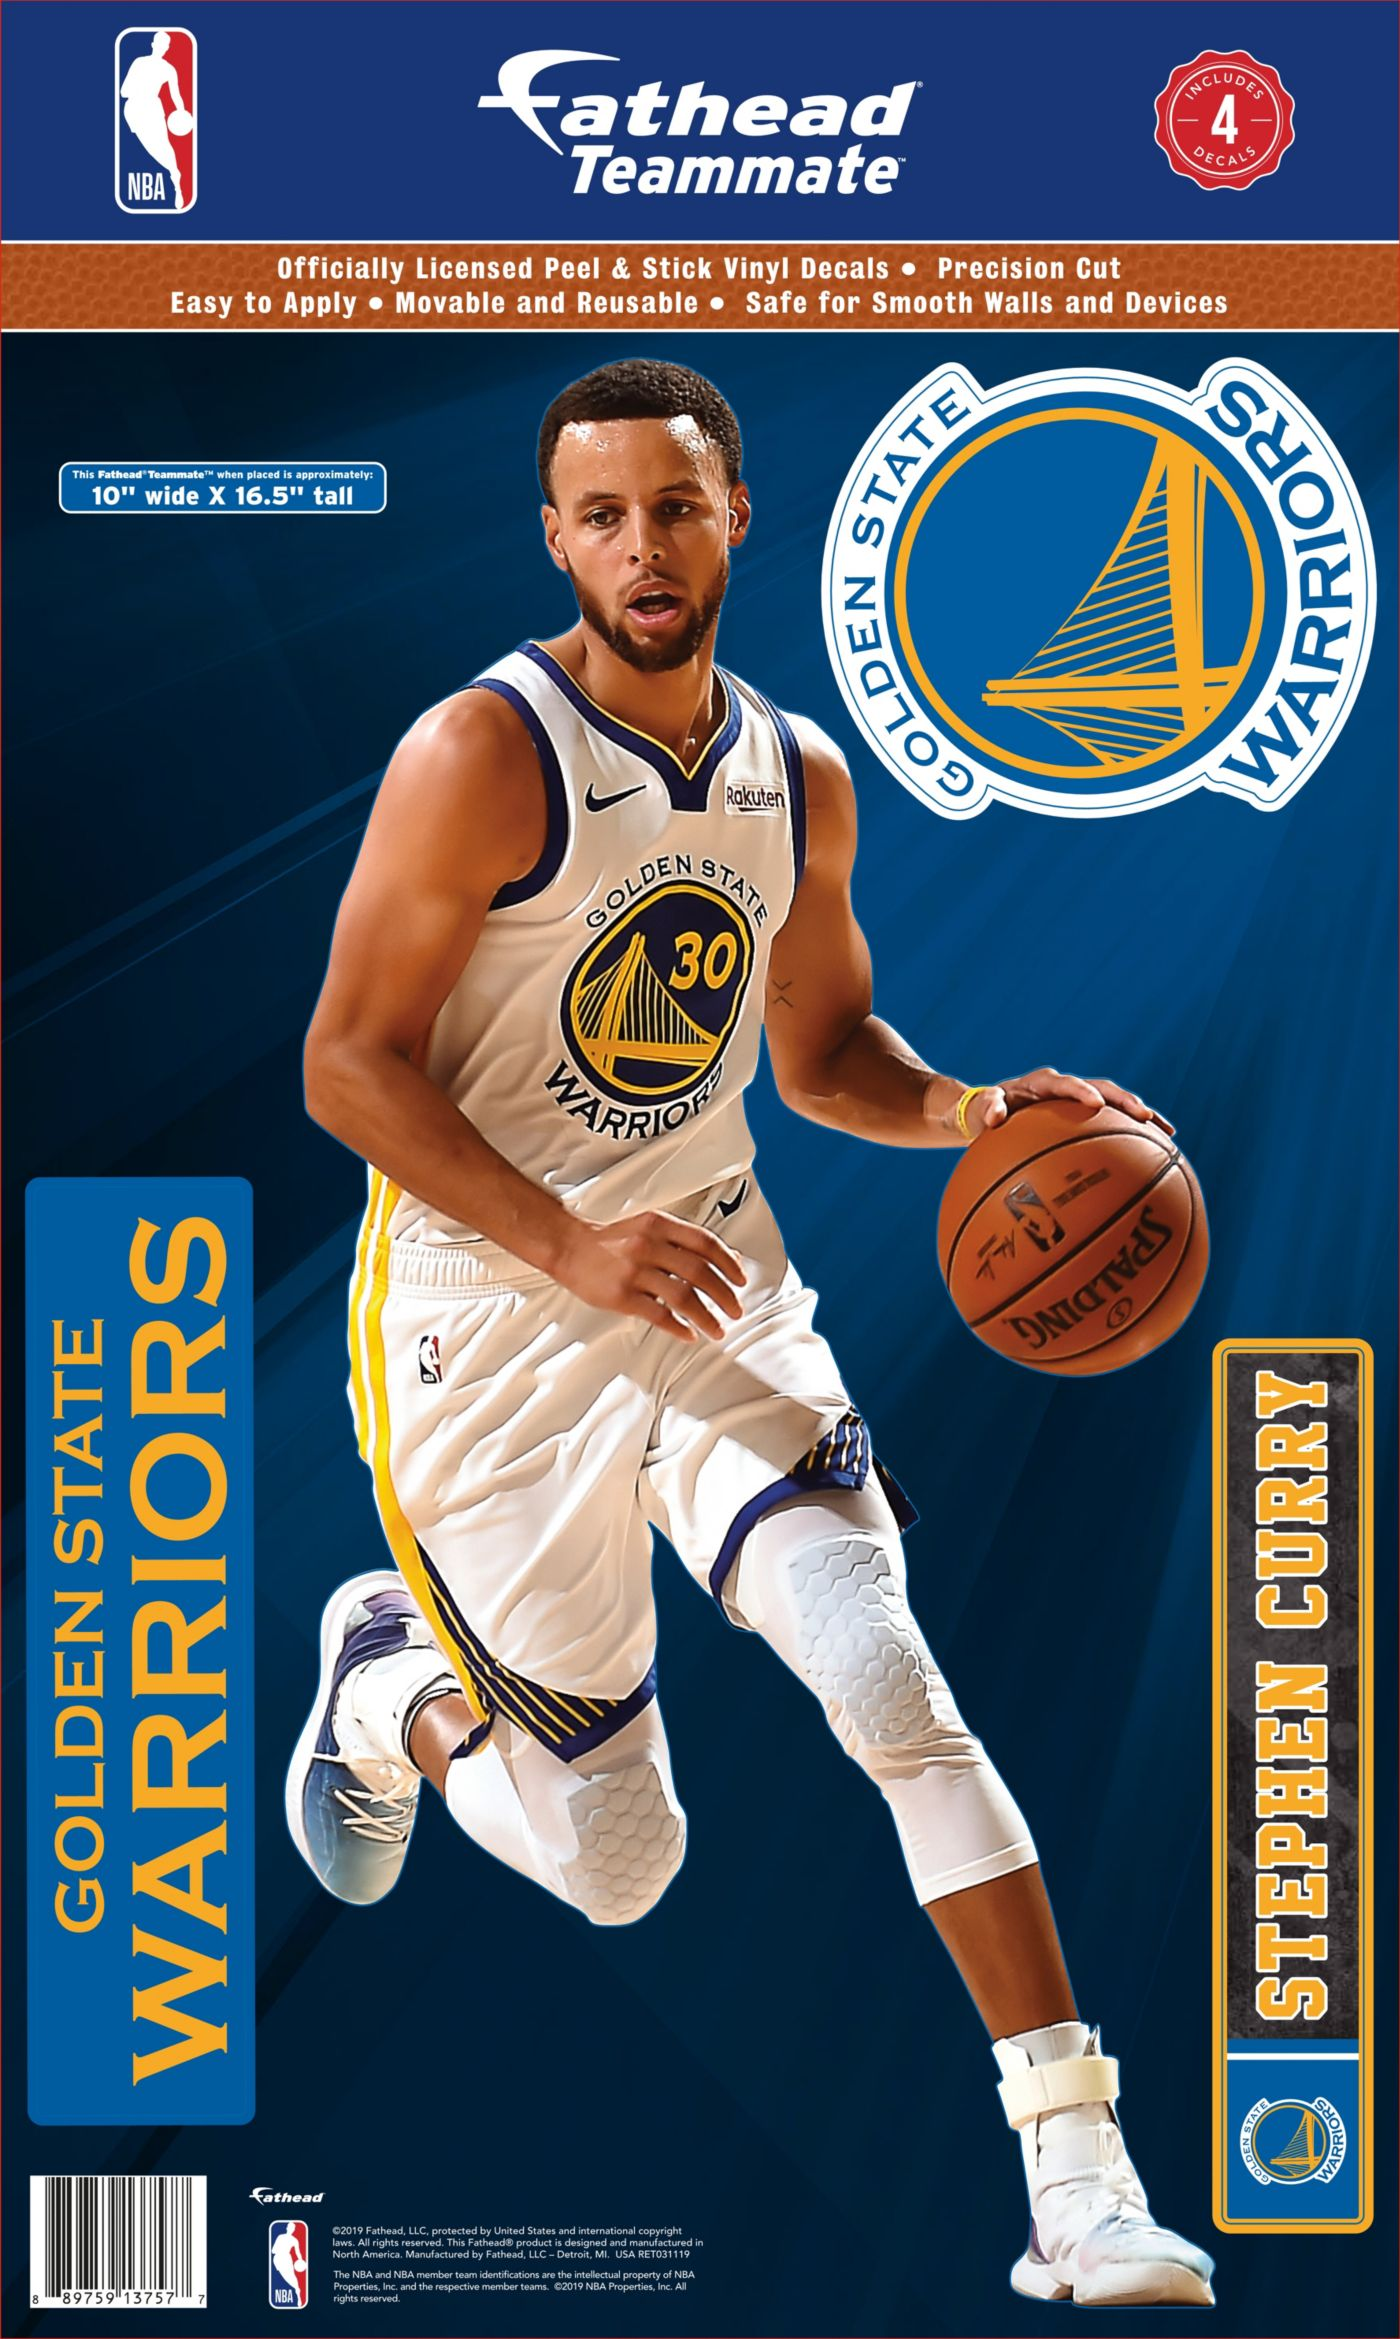 Fathead Golden State Warriors Stephen Curry Teammate Wall Decal